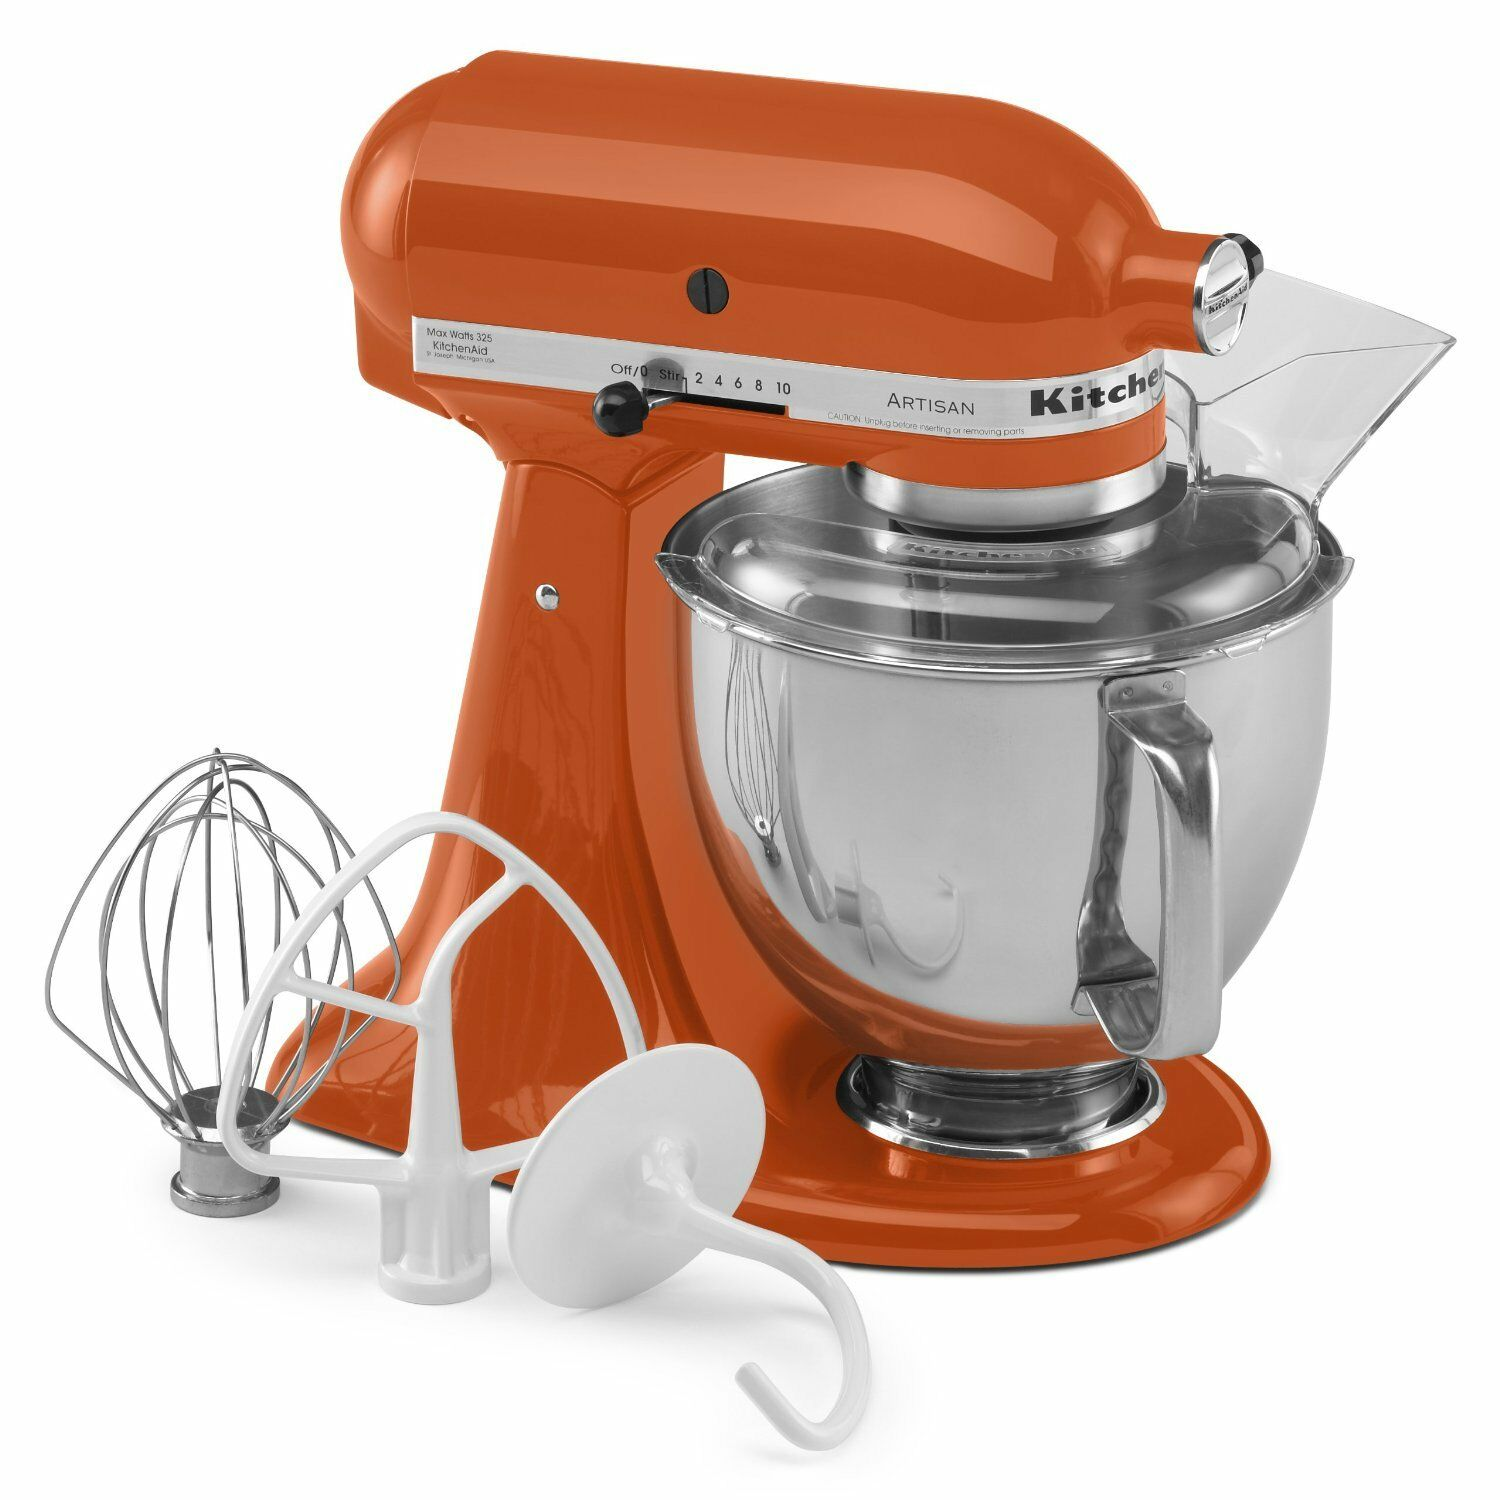 KitchenAid stand mixer Tilt 5-Quart KSM 150 pspn Orange Persimmon Artisan Nouveau